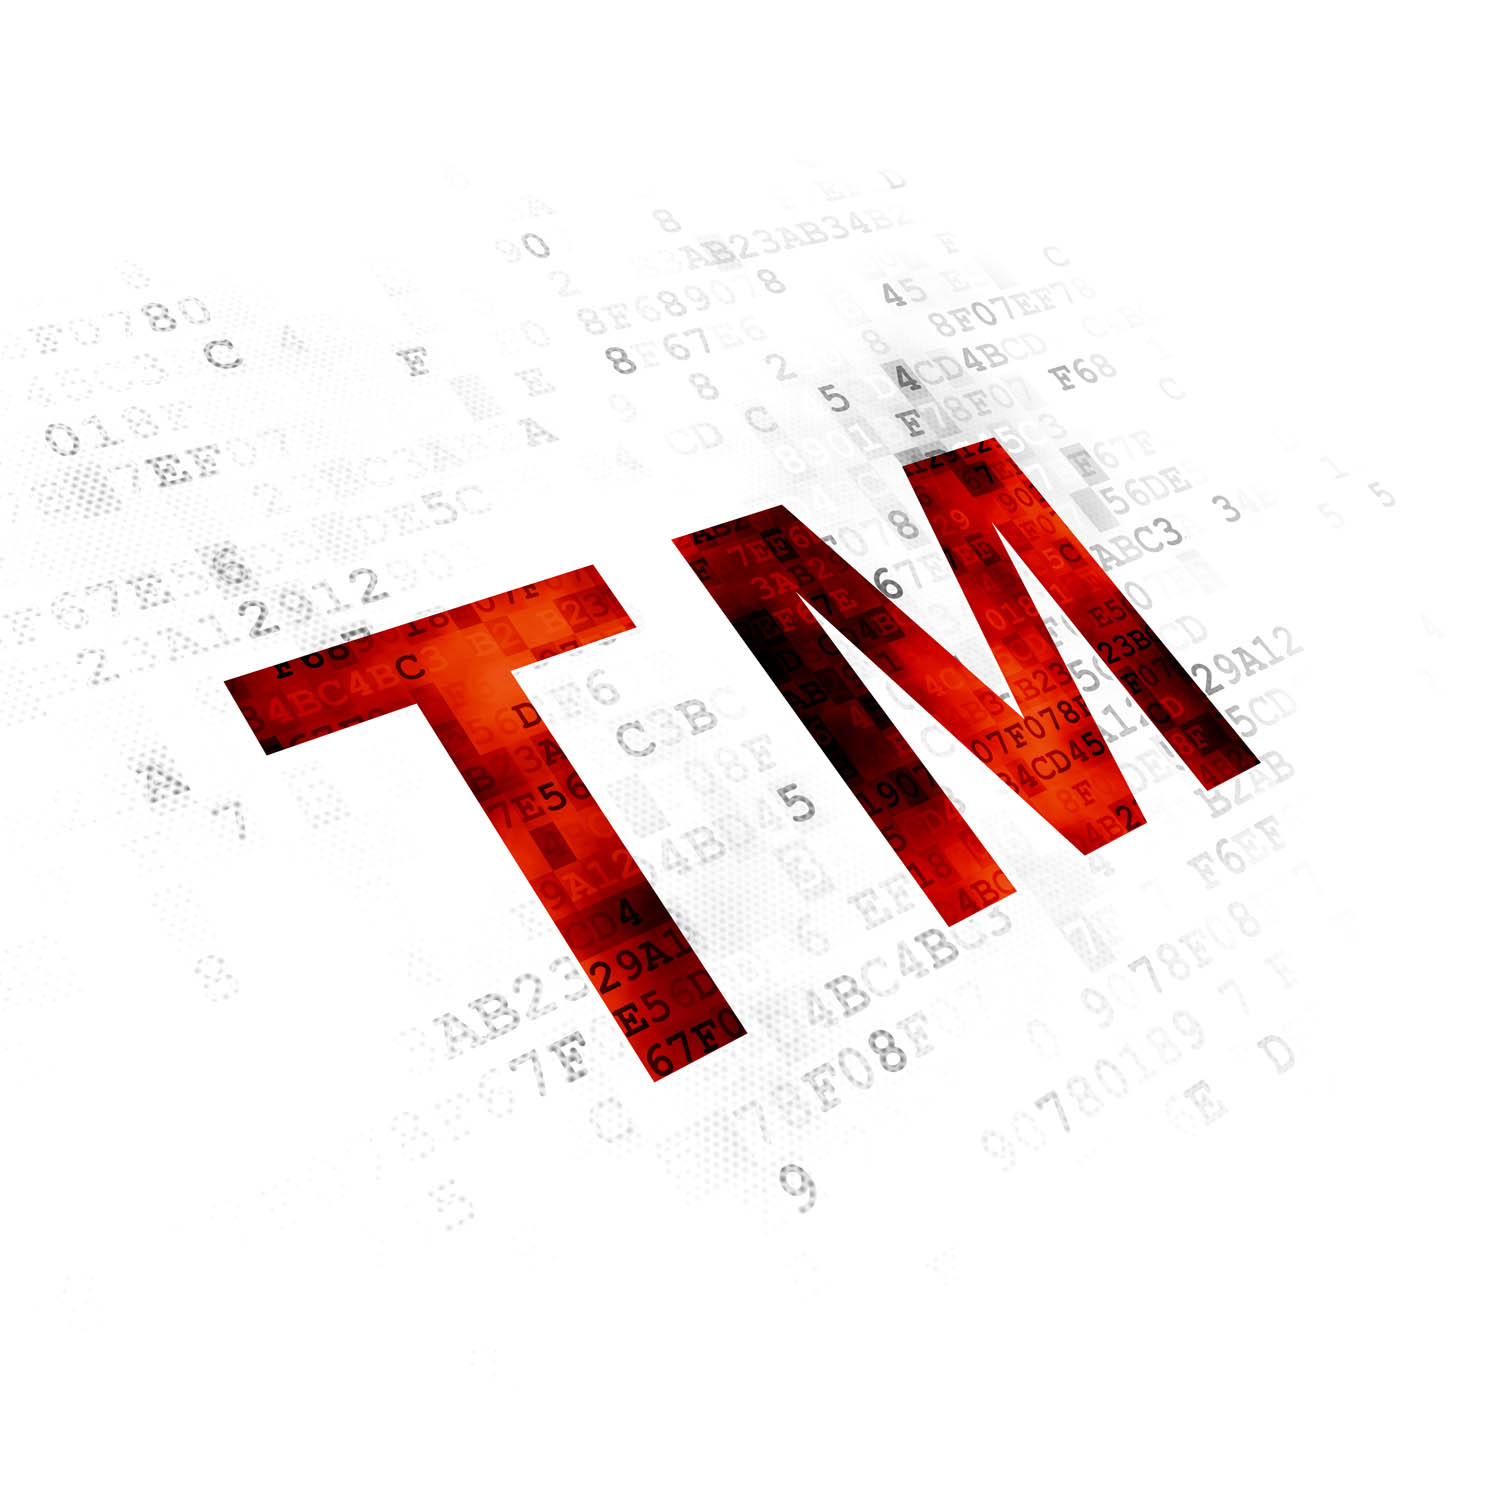 Trademark Registration: Defending Your Emblem Design